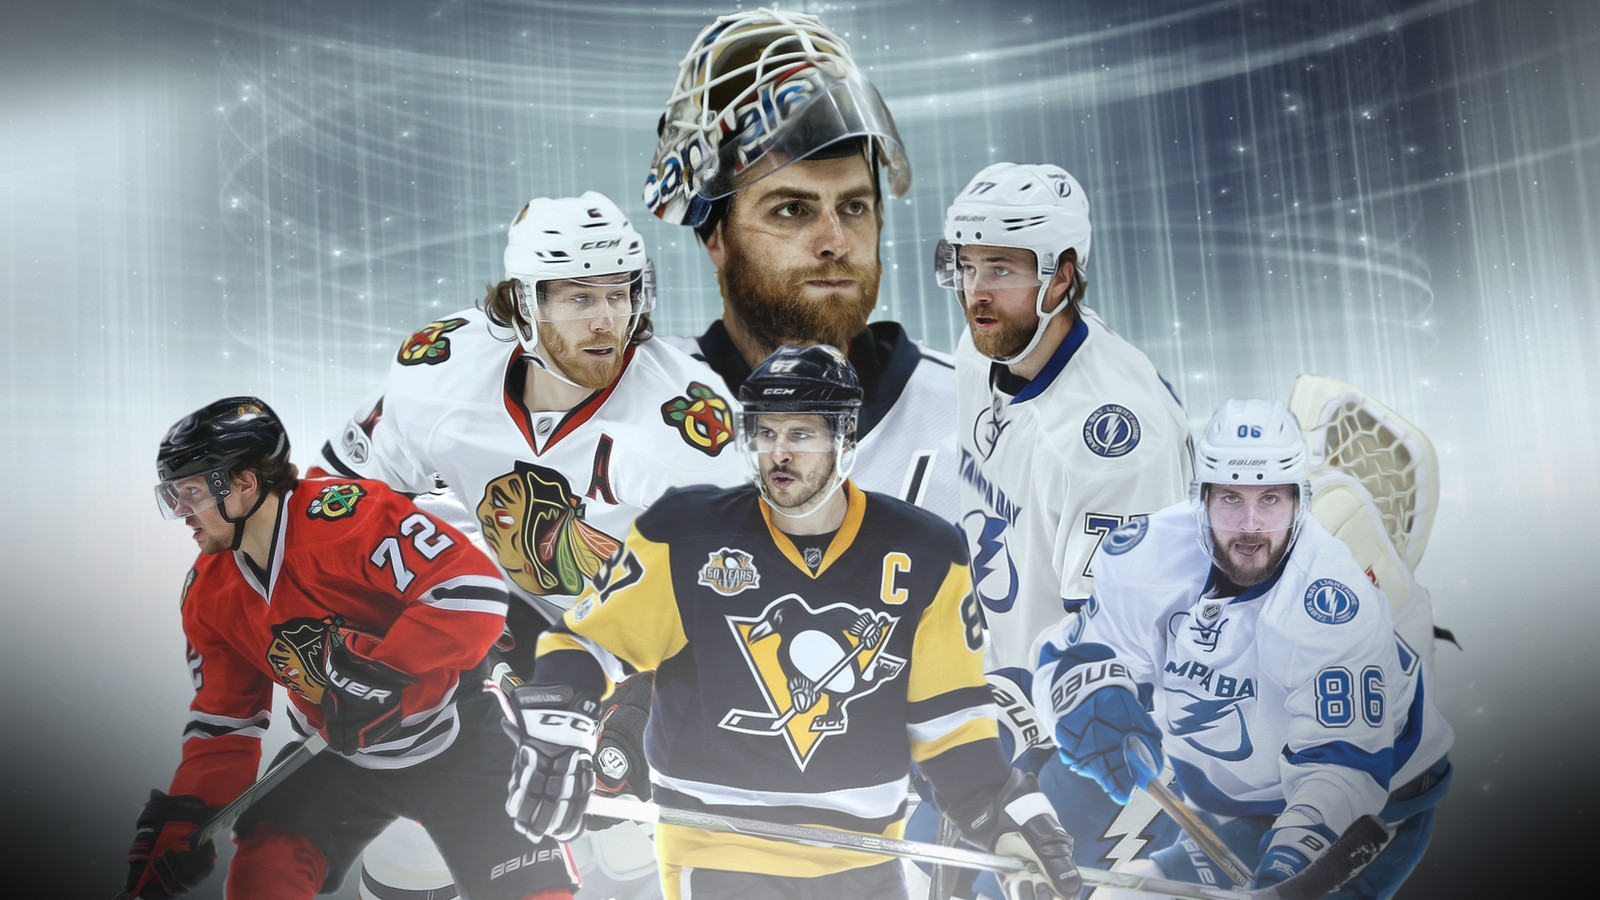 2nd_all_star_team_graphic.0